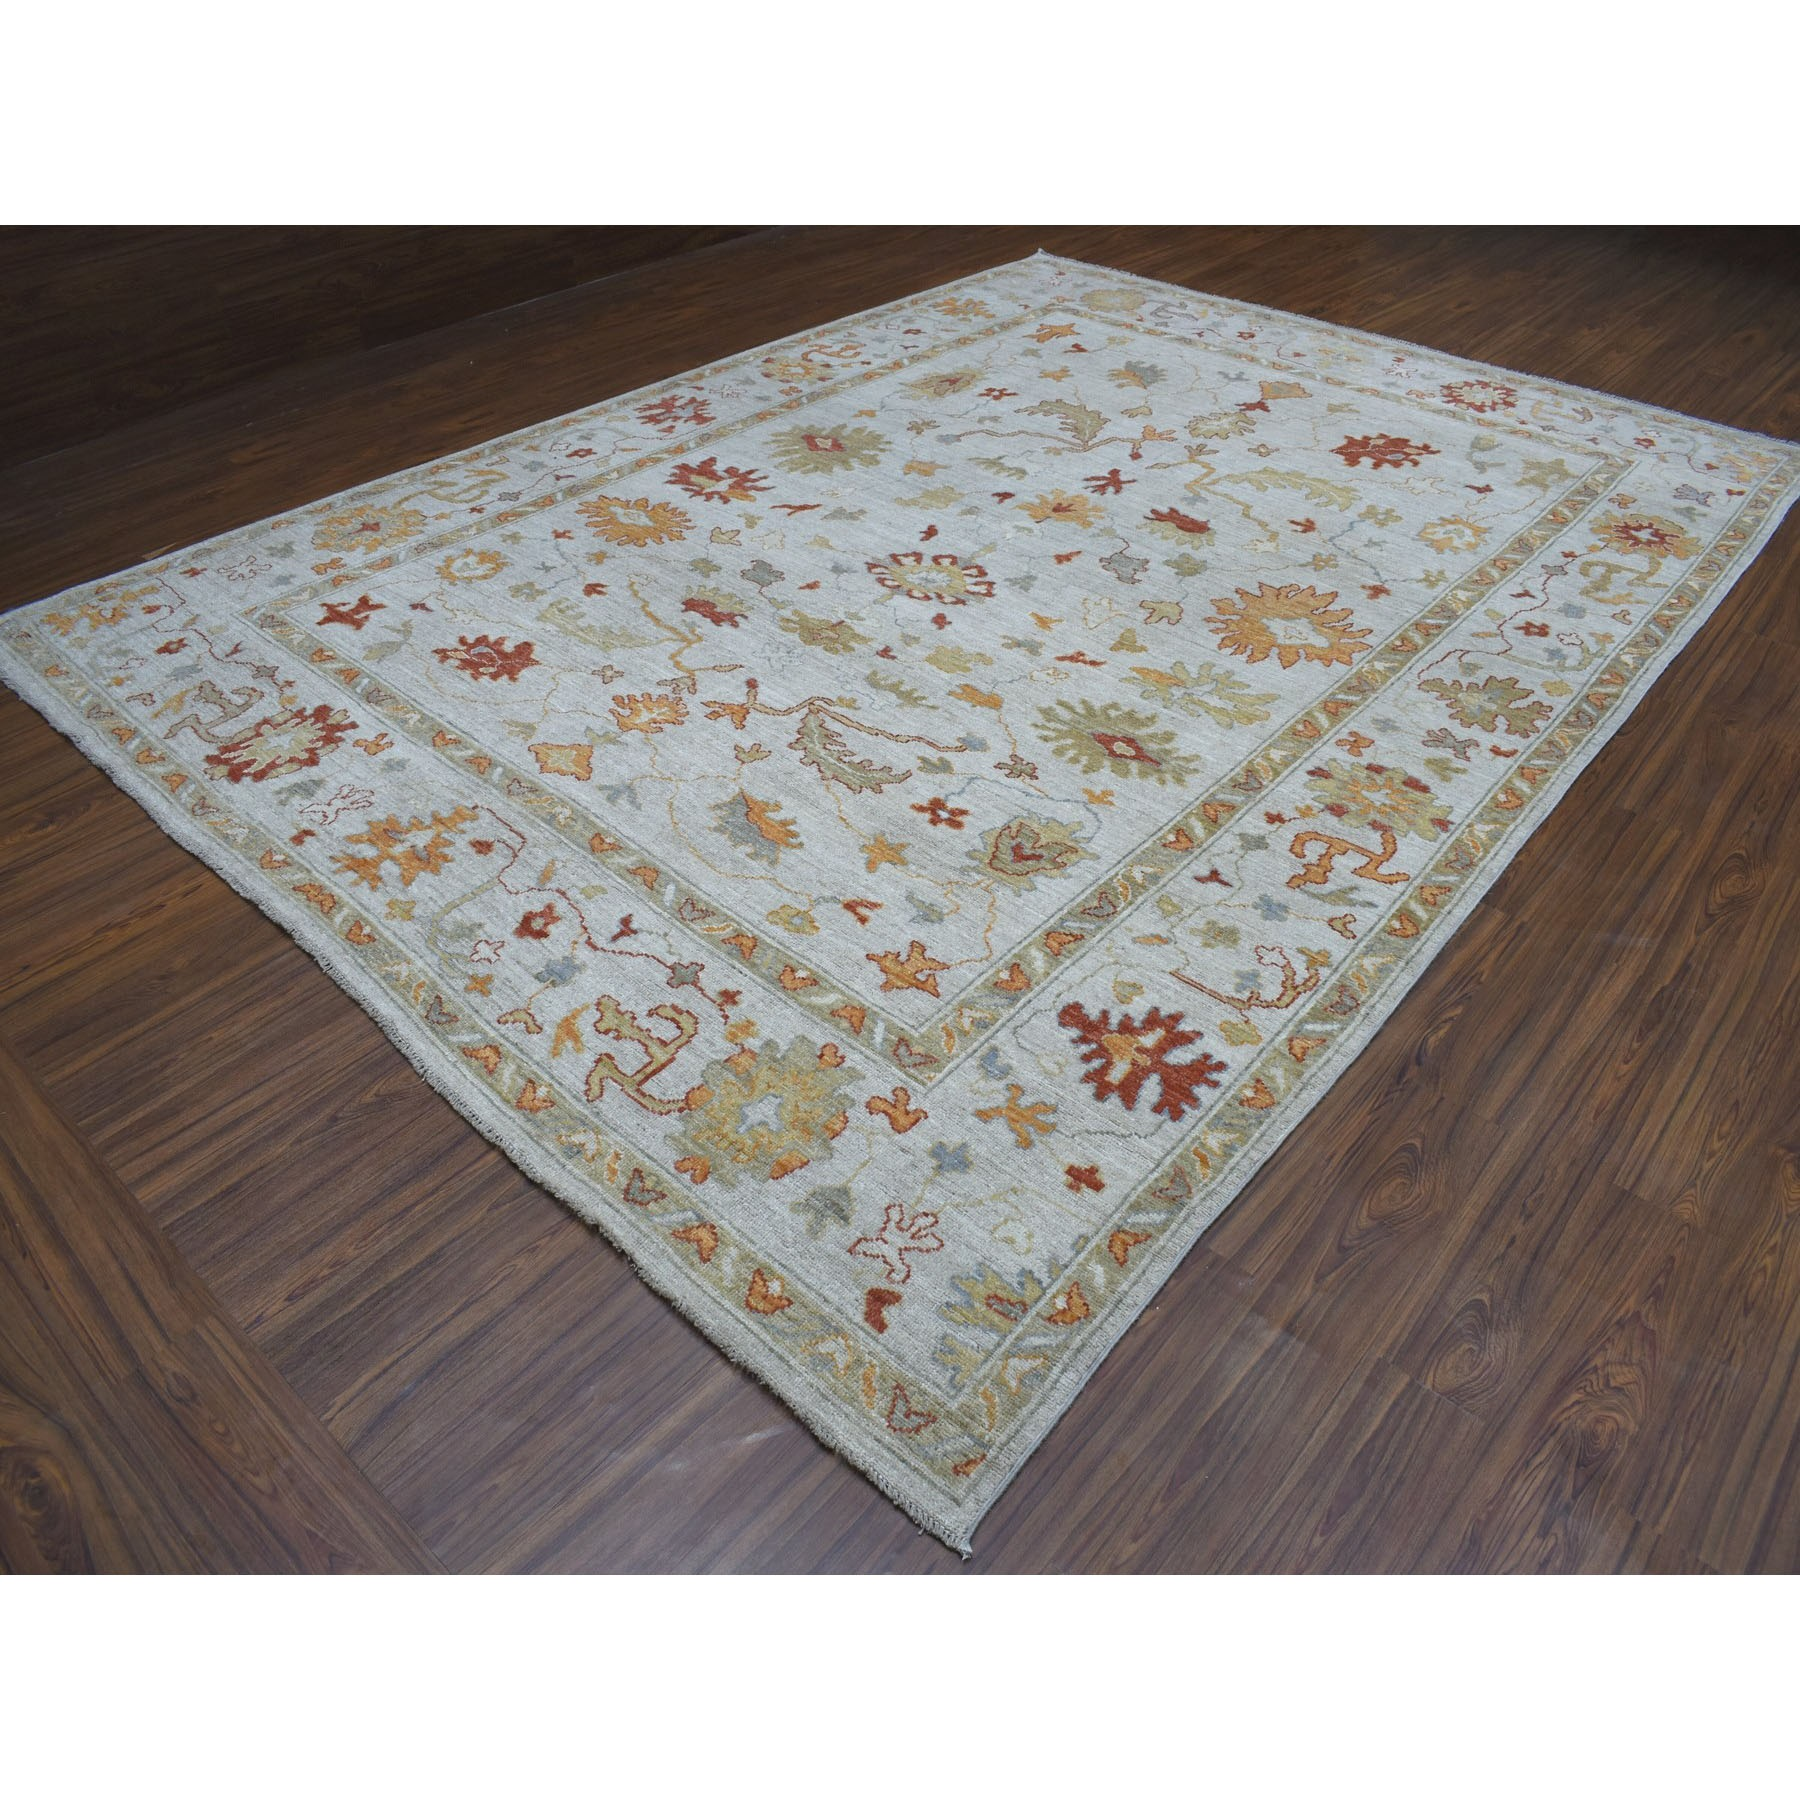 """9'10""""x13'4"""" Gray Angora Oushak Pure Wool Hand Knotted Oriental Rug"""